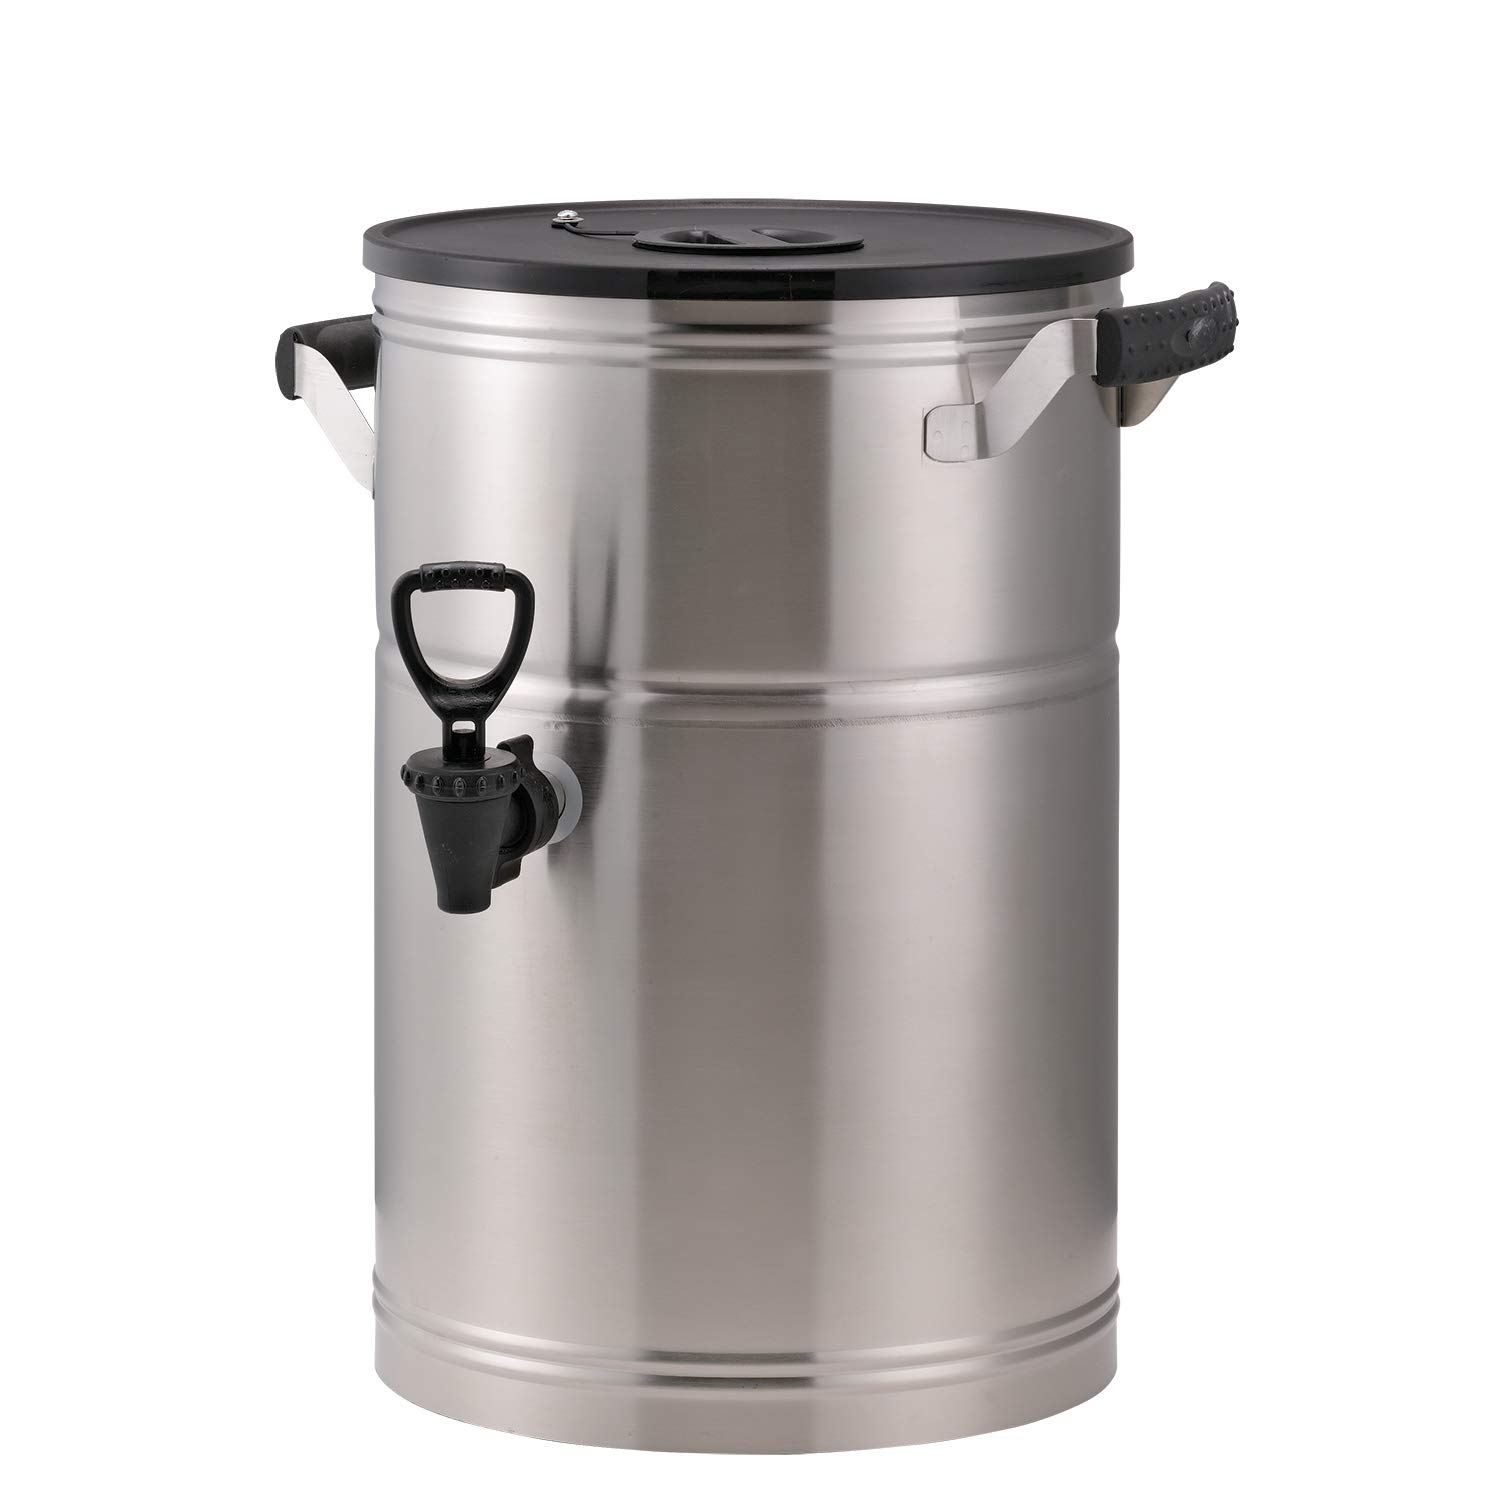 Sale special Award price Service Ideas ITS3GPL Round Tea 3 Gallon Stainless Steel Urn